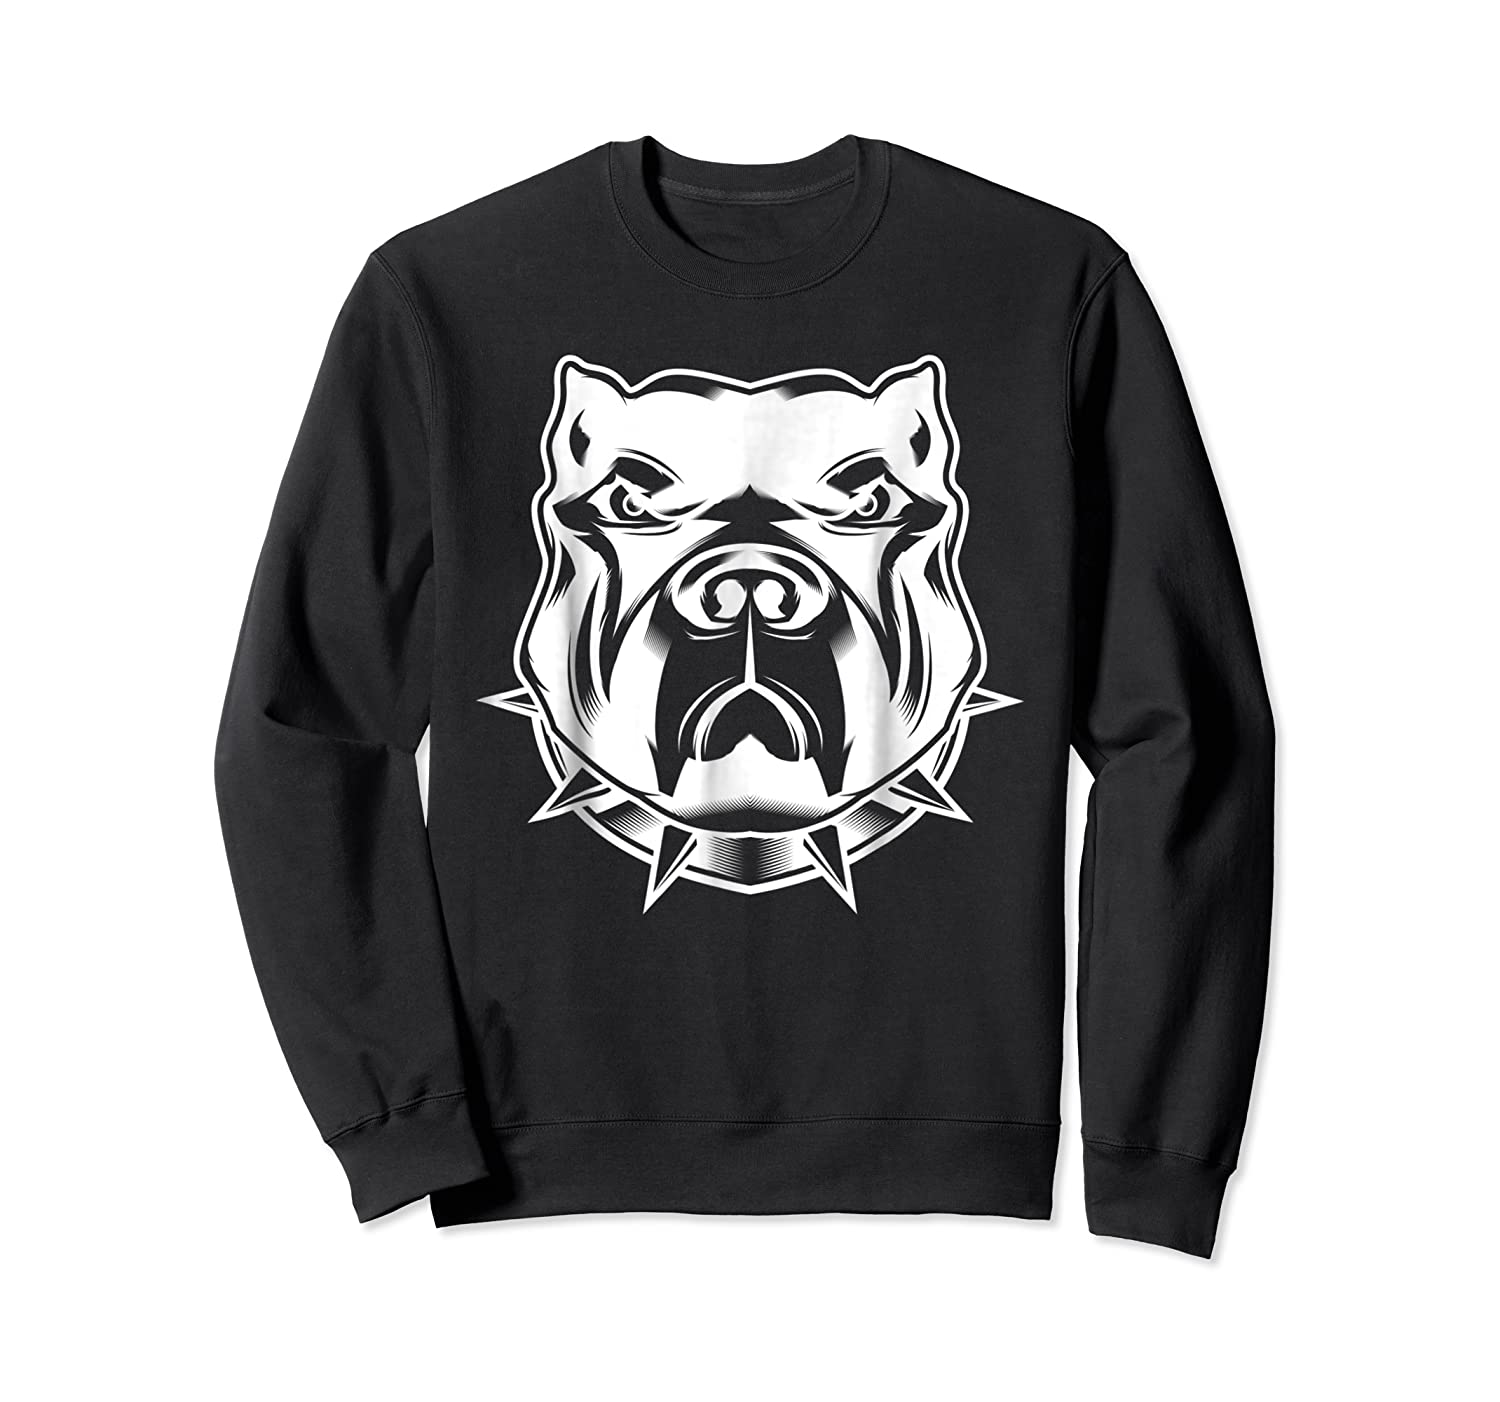 Pit Bull Face T For Pitbull And Apbt Lovers Shirts Crewneck Sweater